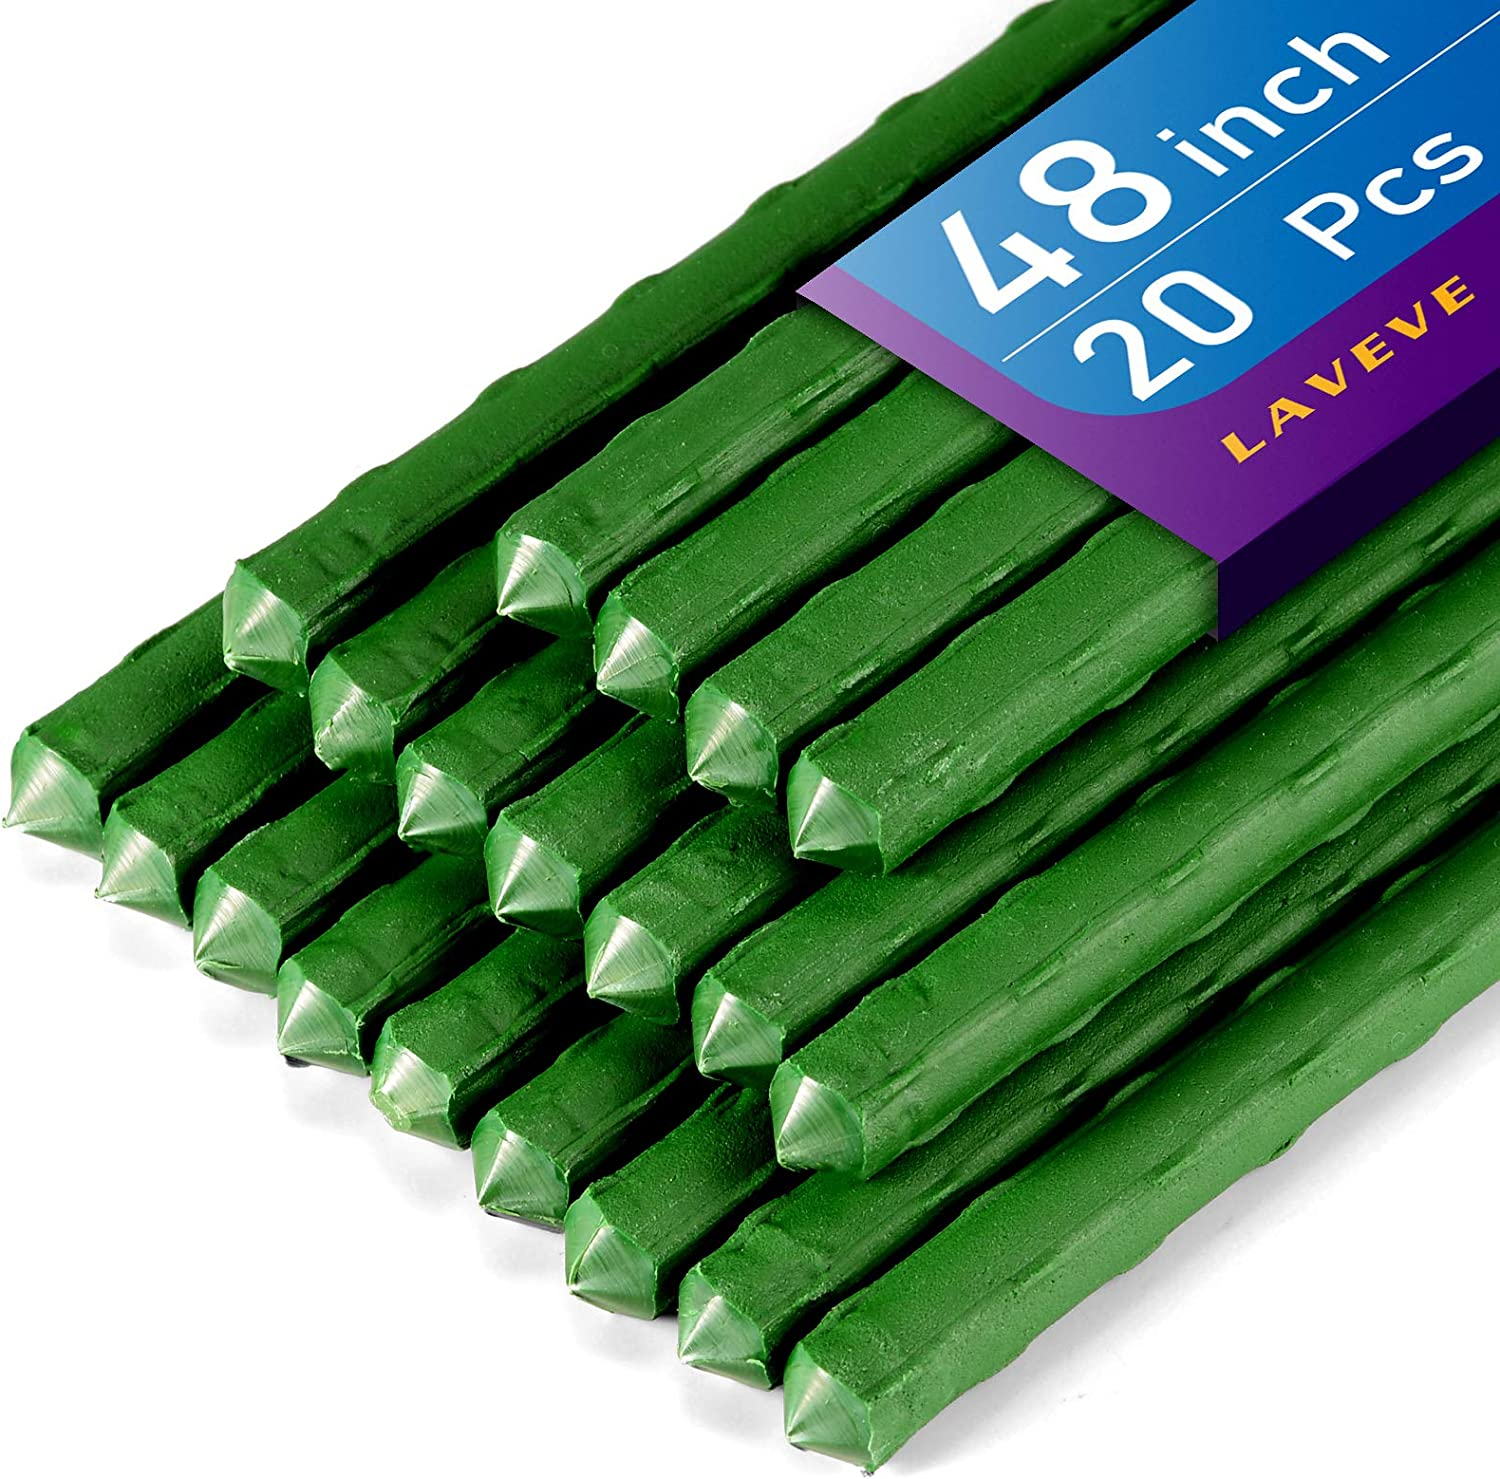 LAVEVE Garden Stakes for Plants 48'' / 4ft - 20 Pcs Metal Plant Support Tomato Stakes for Vegetables, Climbing Plants, Plants Cage, Cucumber, Beans, Tree